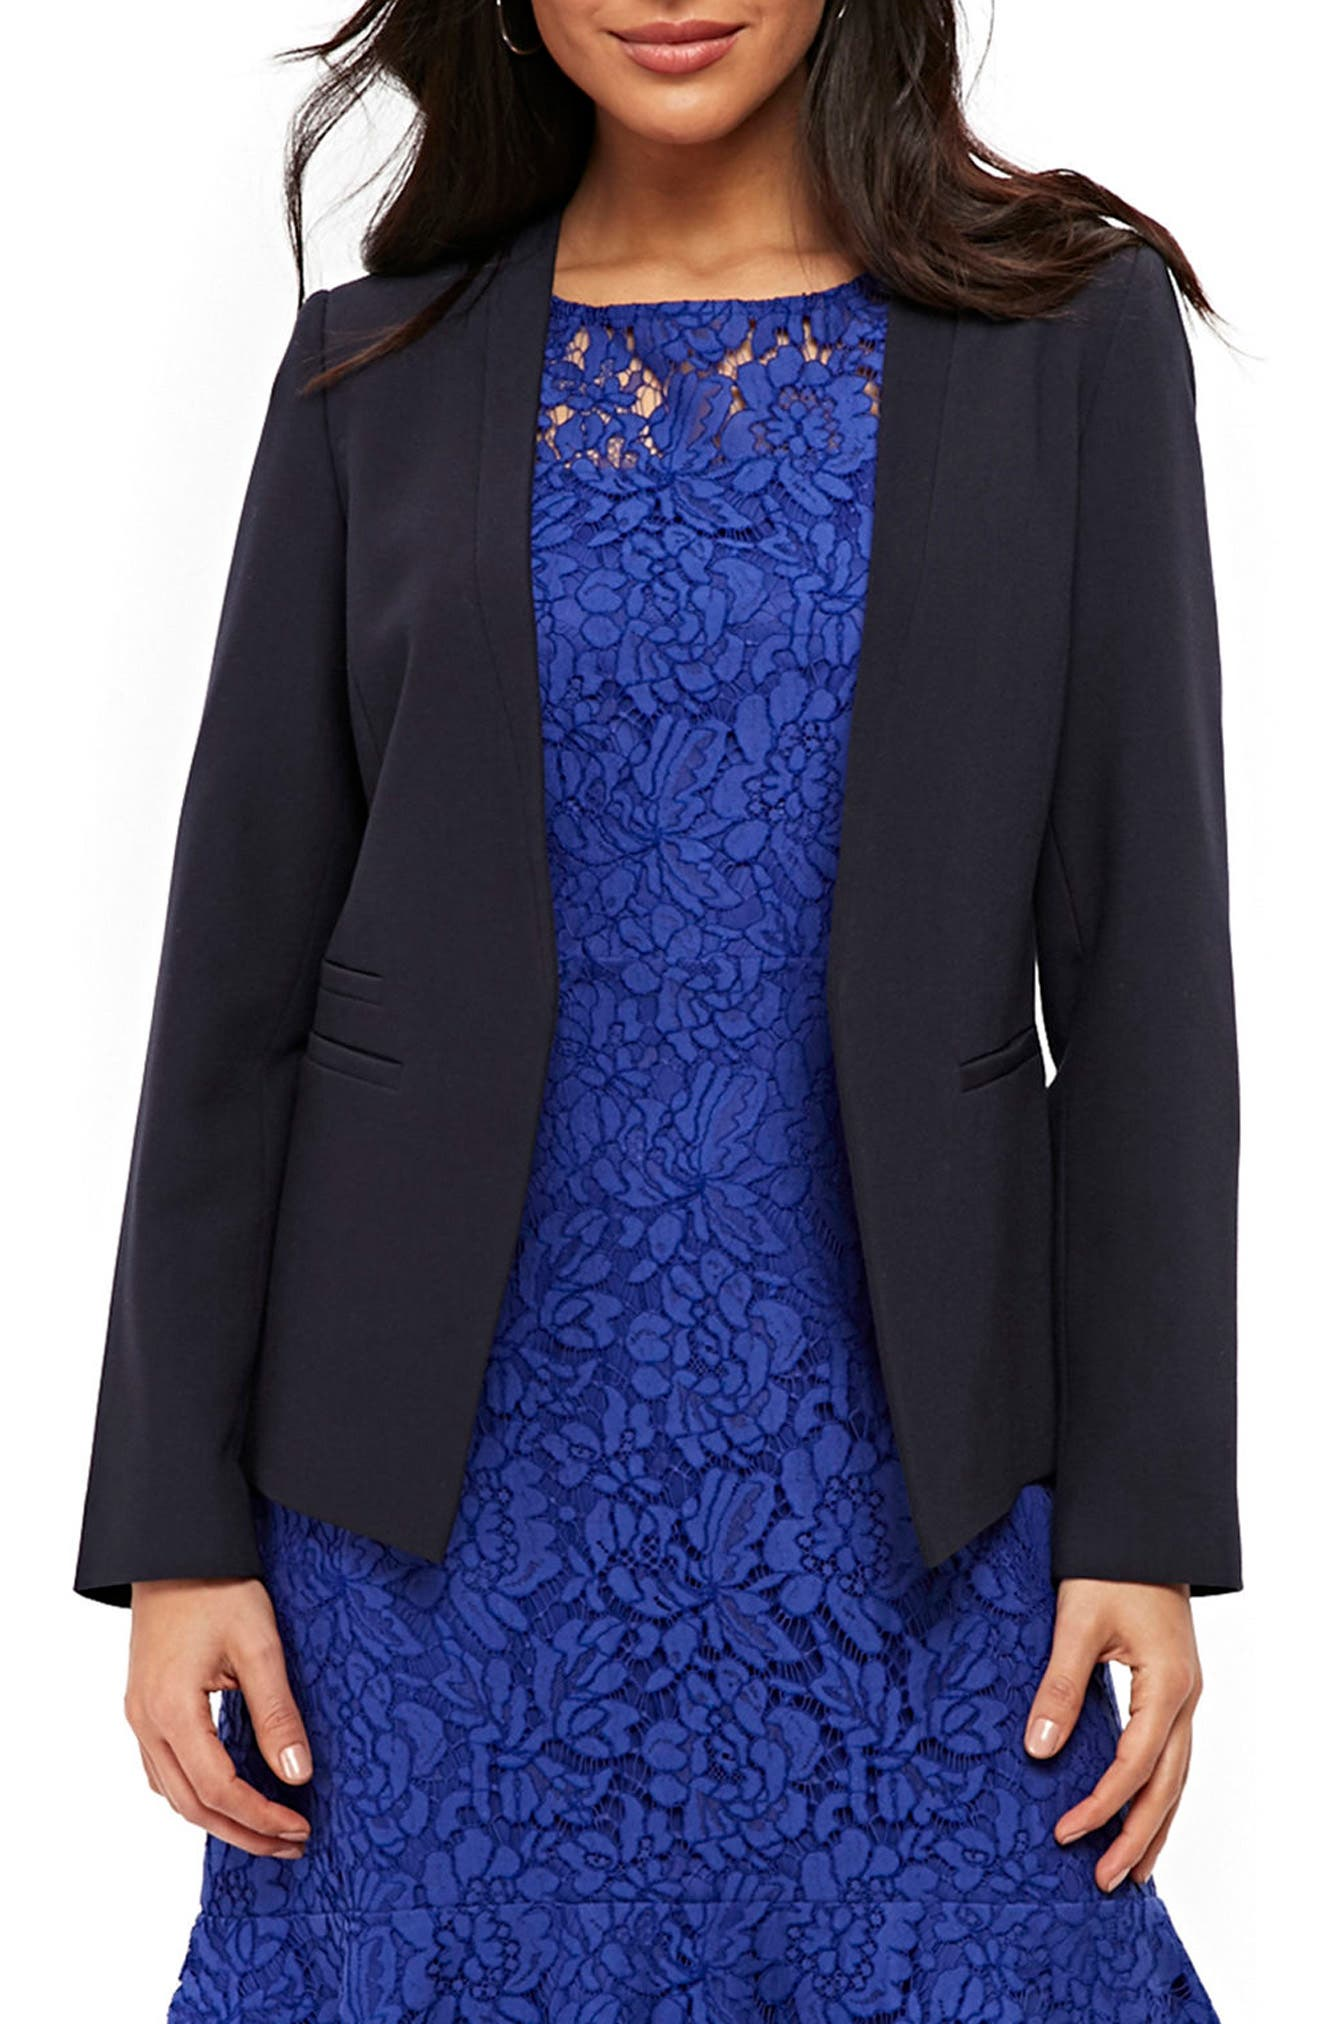 Giglio Edge to Edge Jacket,                         Main,                         color, Navy Blue